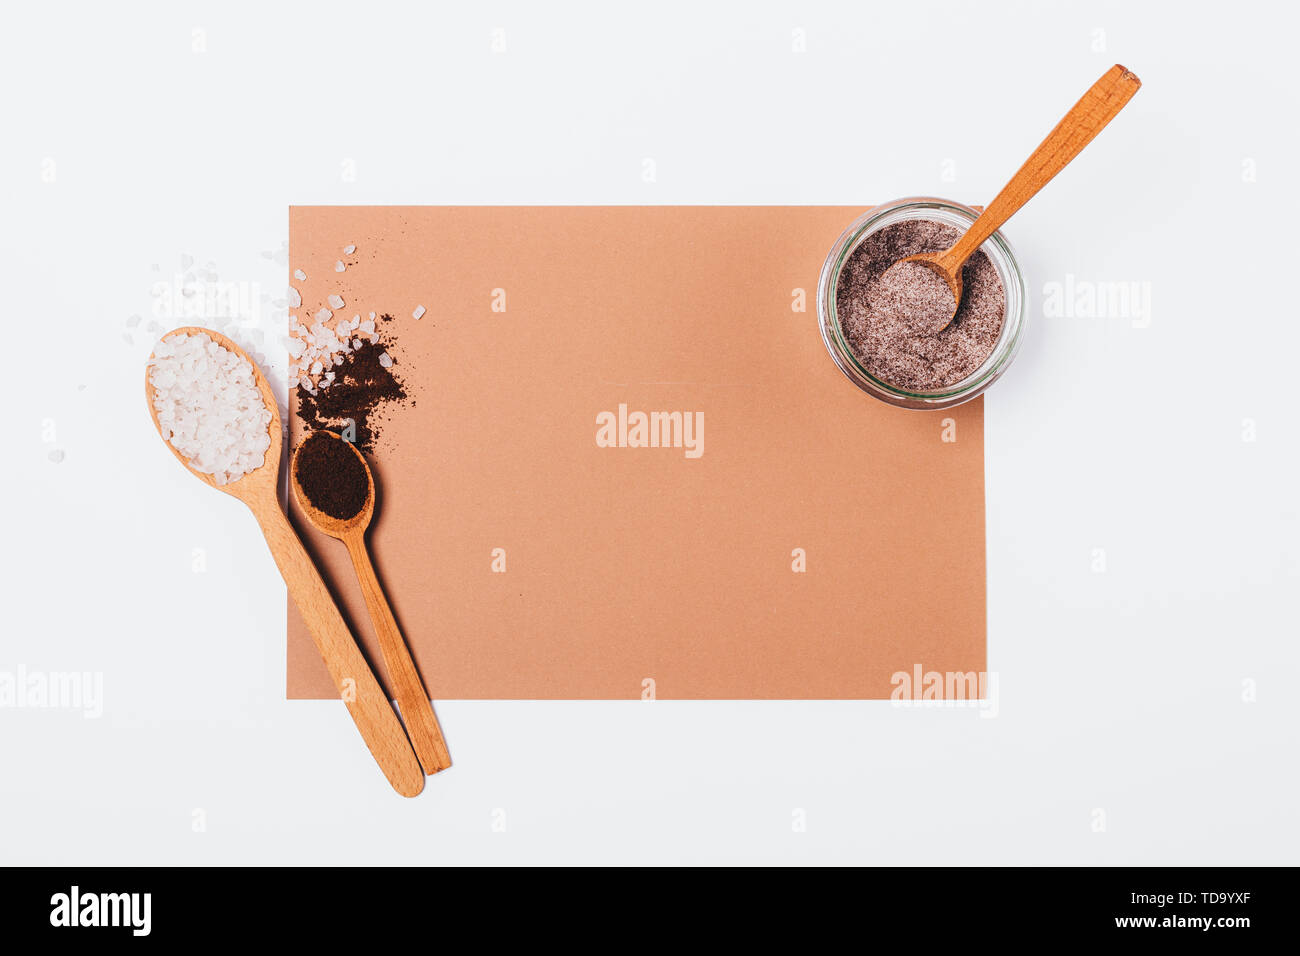 Homemade anti-cellulite coffee scrub with sea salt near jar of fresh made product on white background, flat lay mockup. - Stock Image